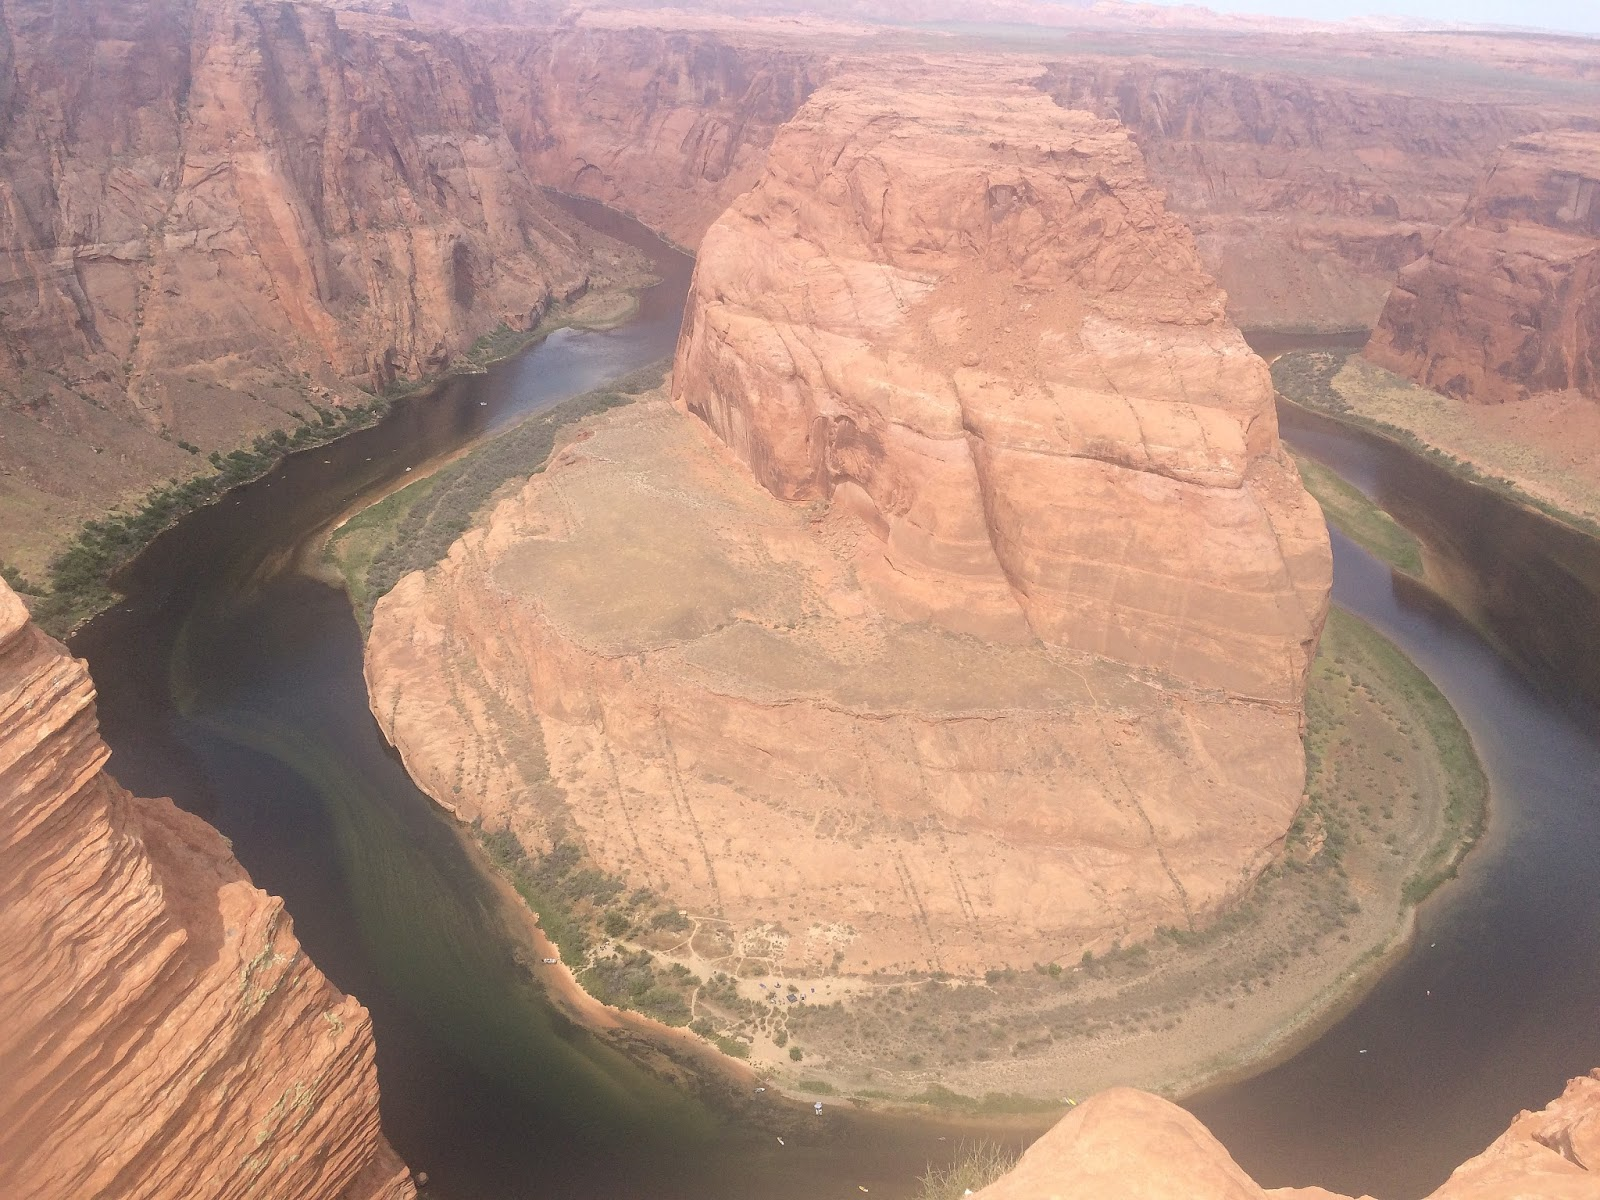 The Horseshoe Bend in Page